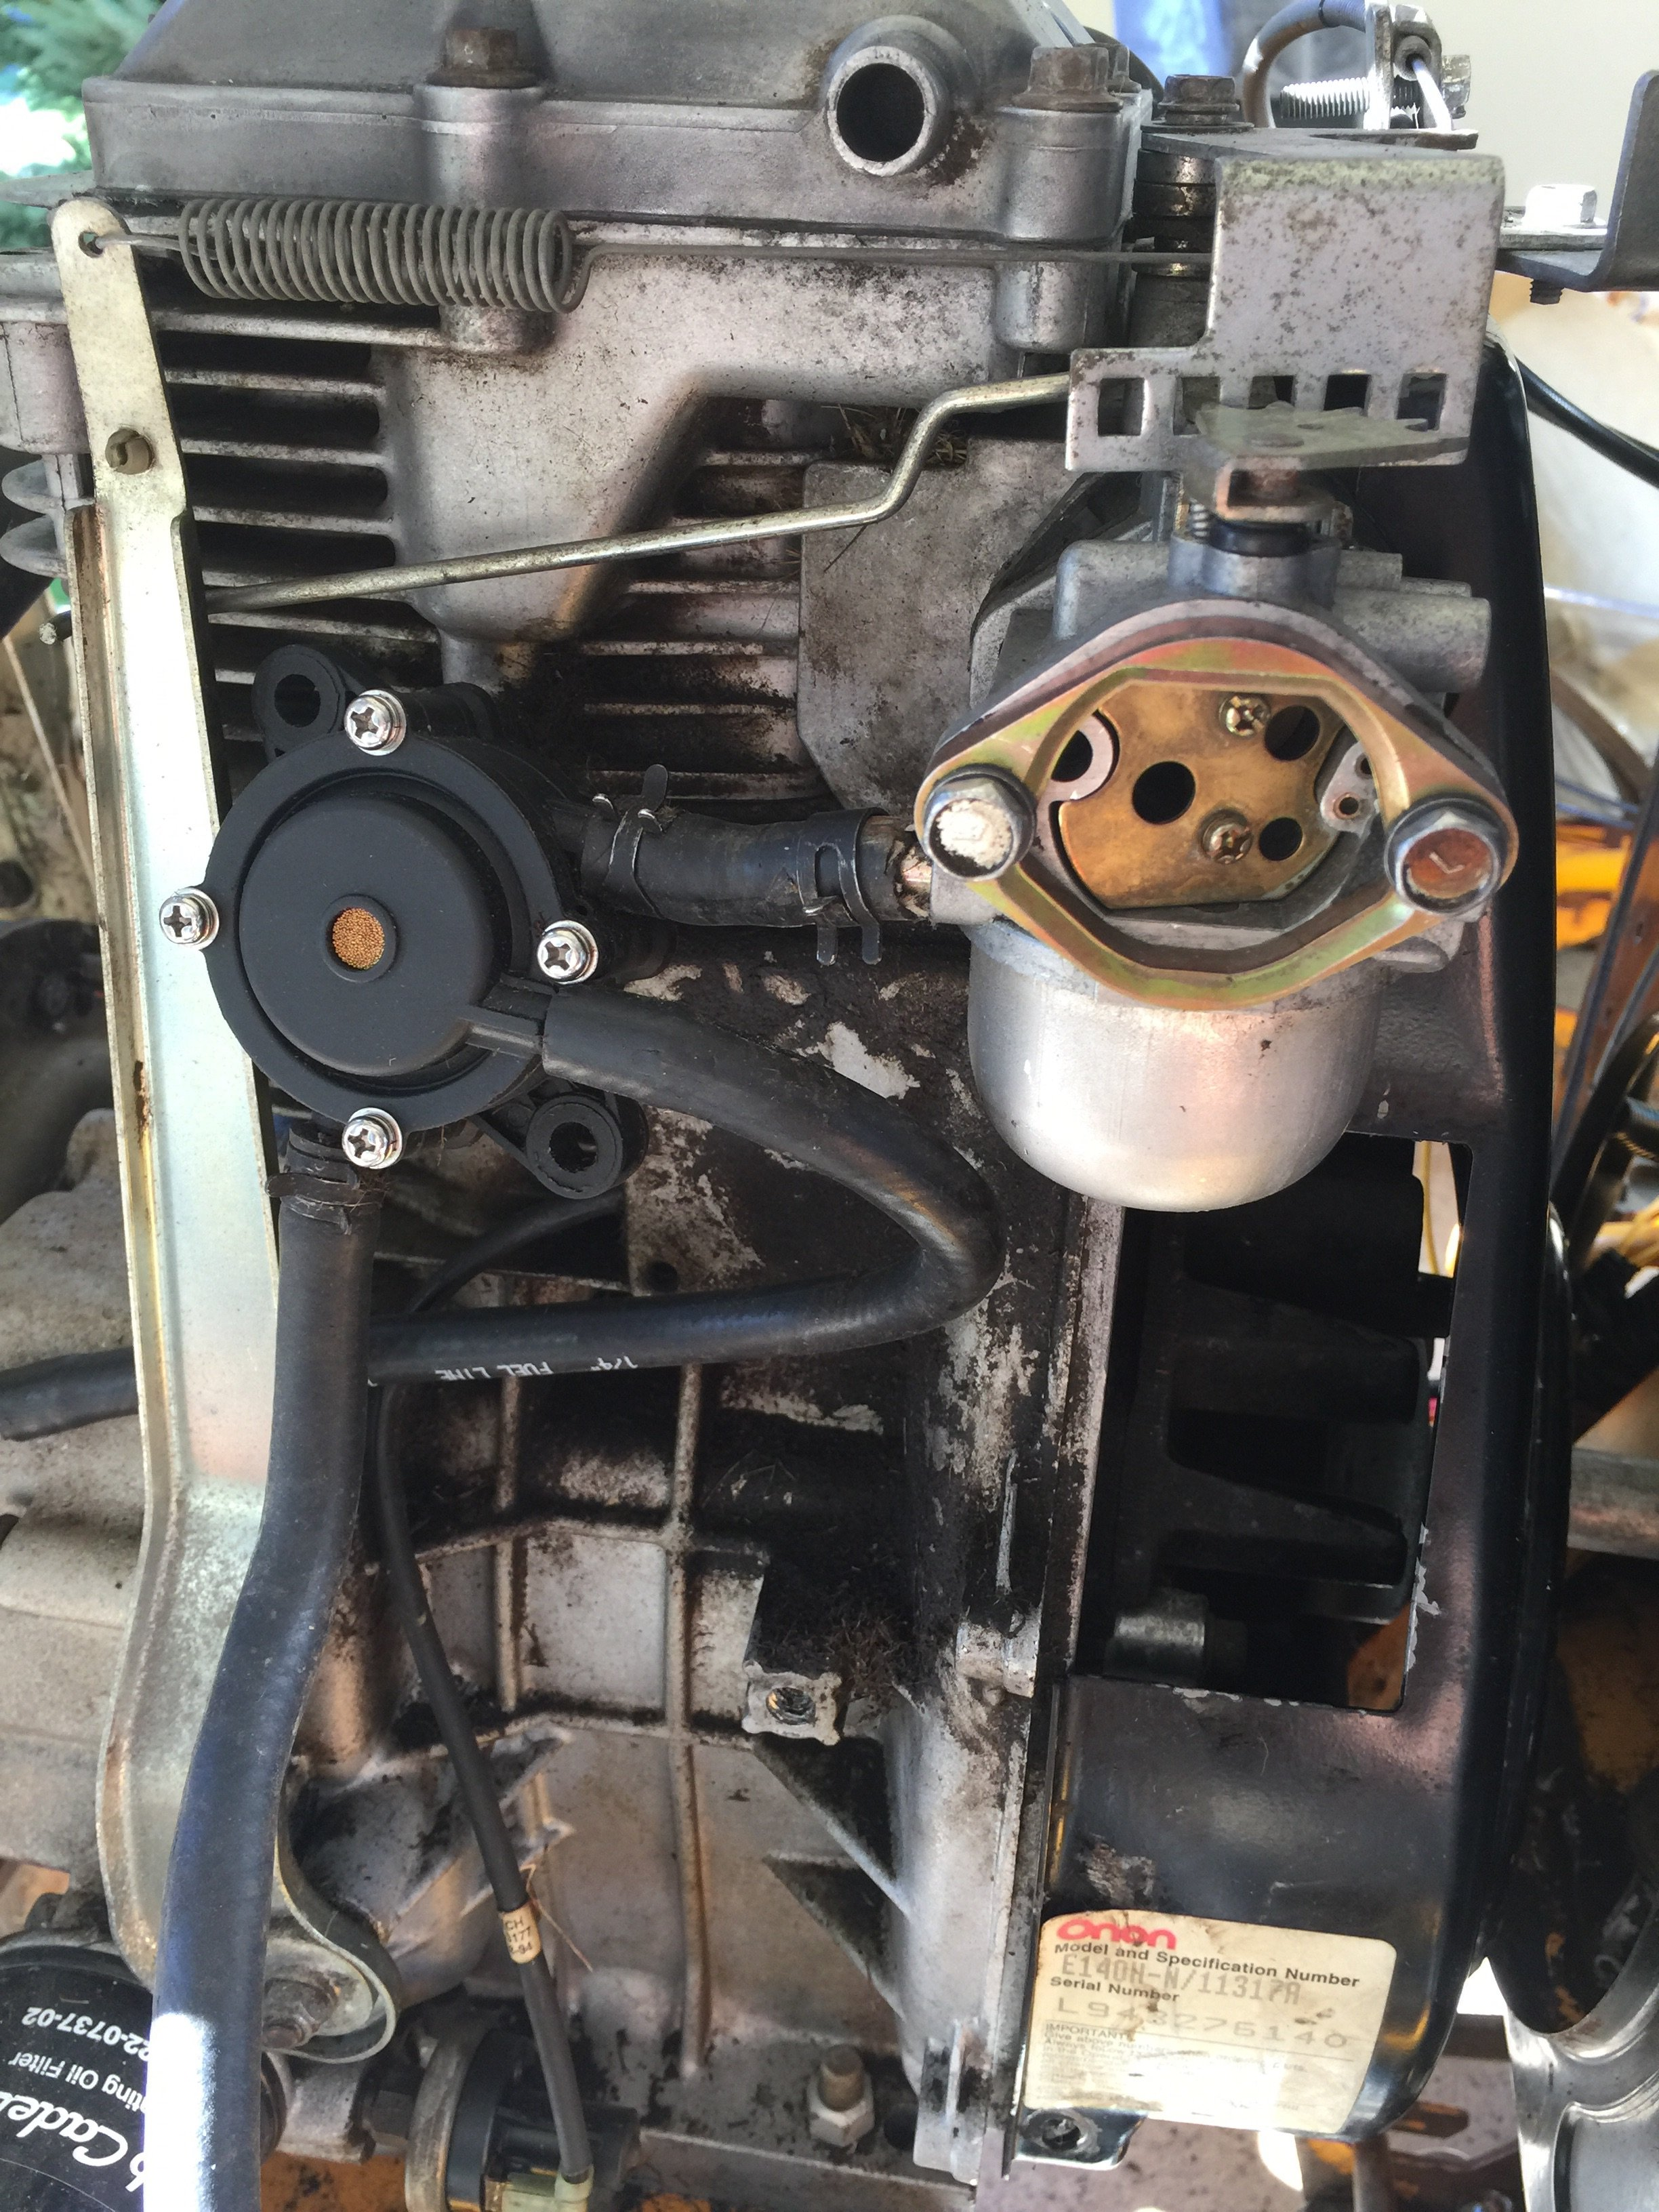 I have a cub cadet 2140 with an Onan 140 engine. I have the ... Ags Cub Cadet Ignition Switch Wiring Diagram on